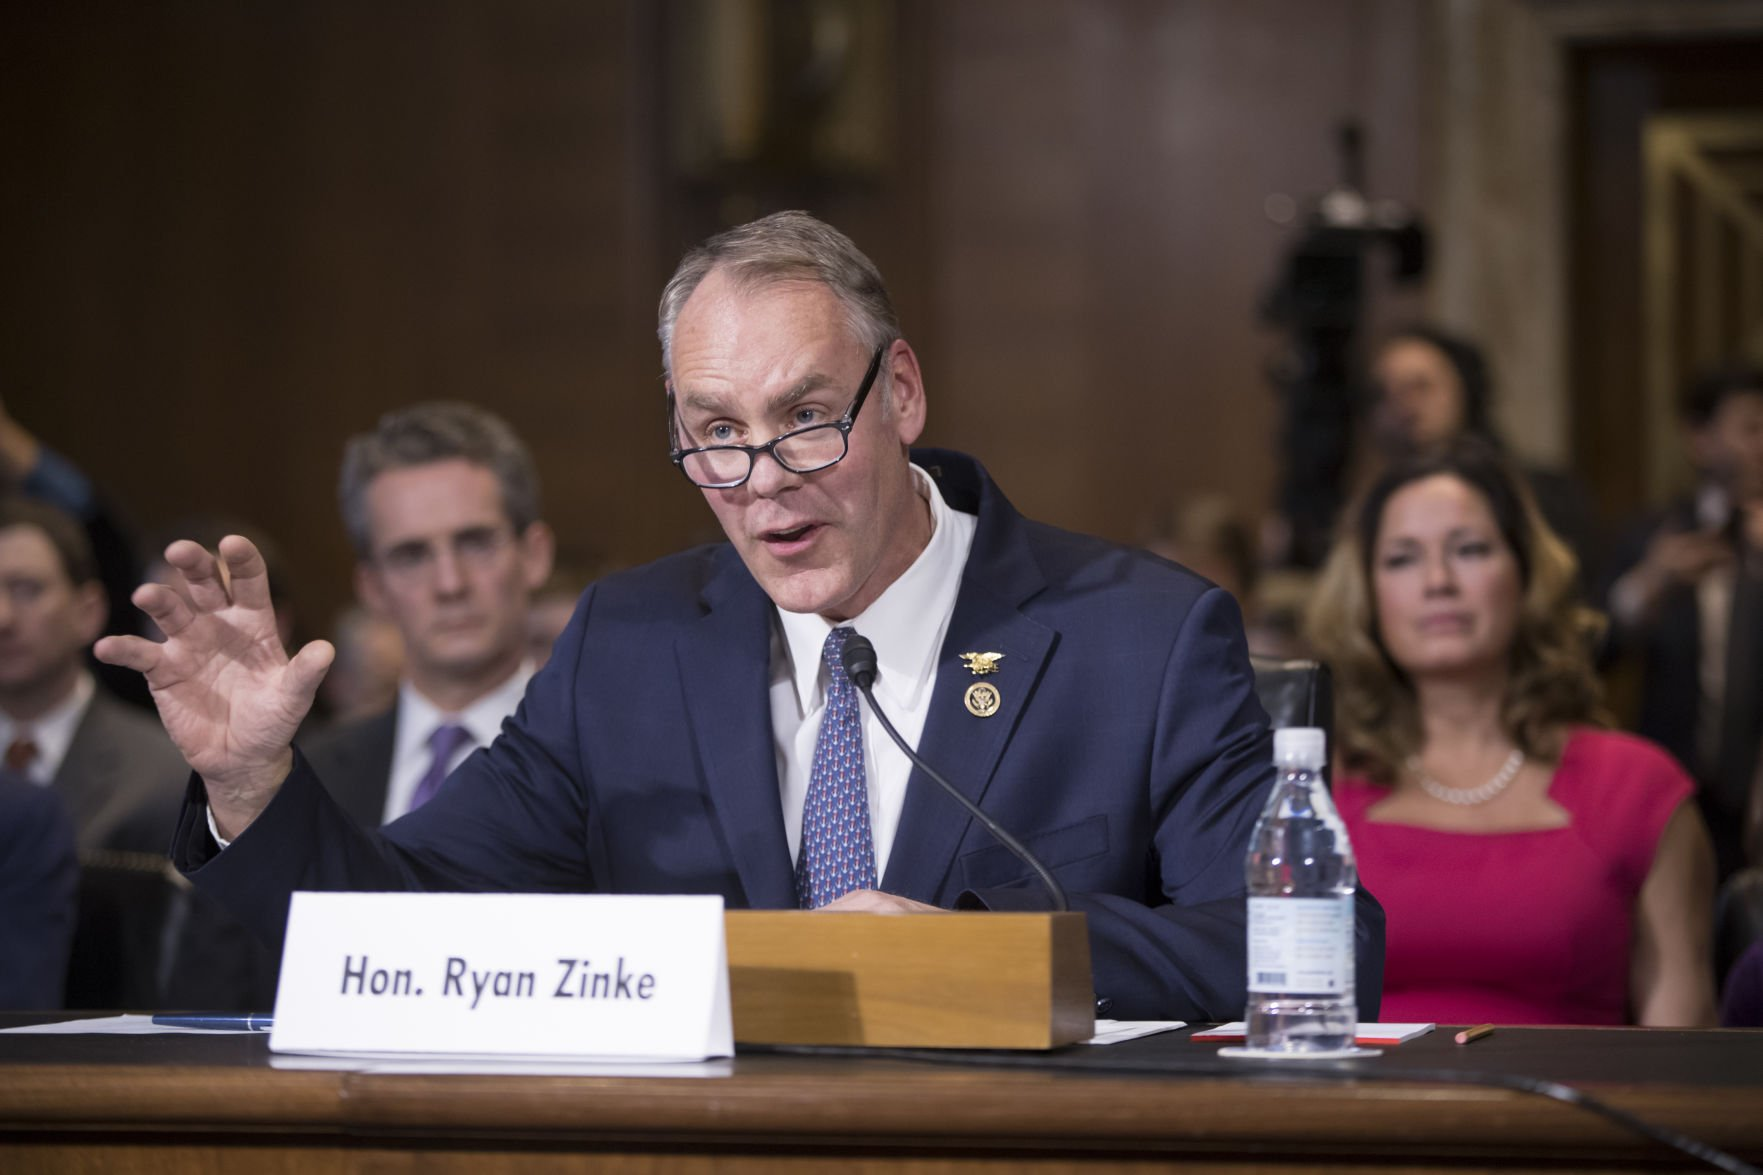 Zinke outlines goals as Interior secretary confirmation hearing